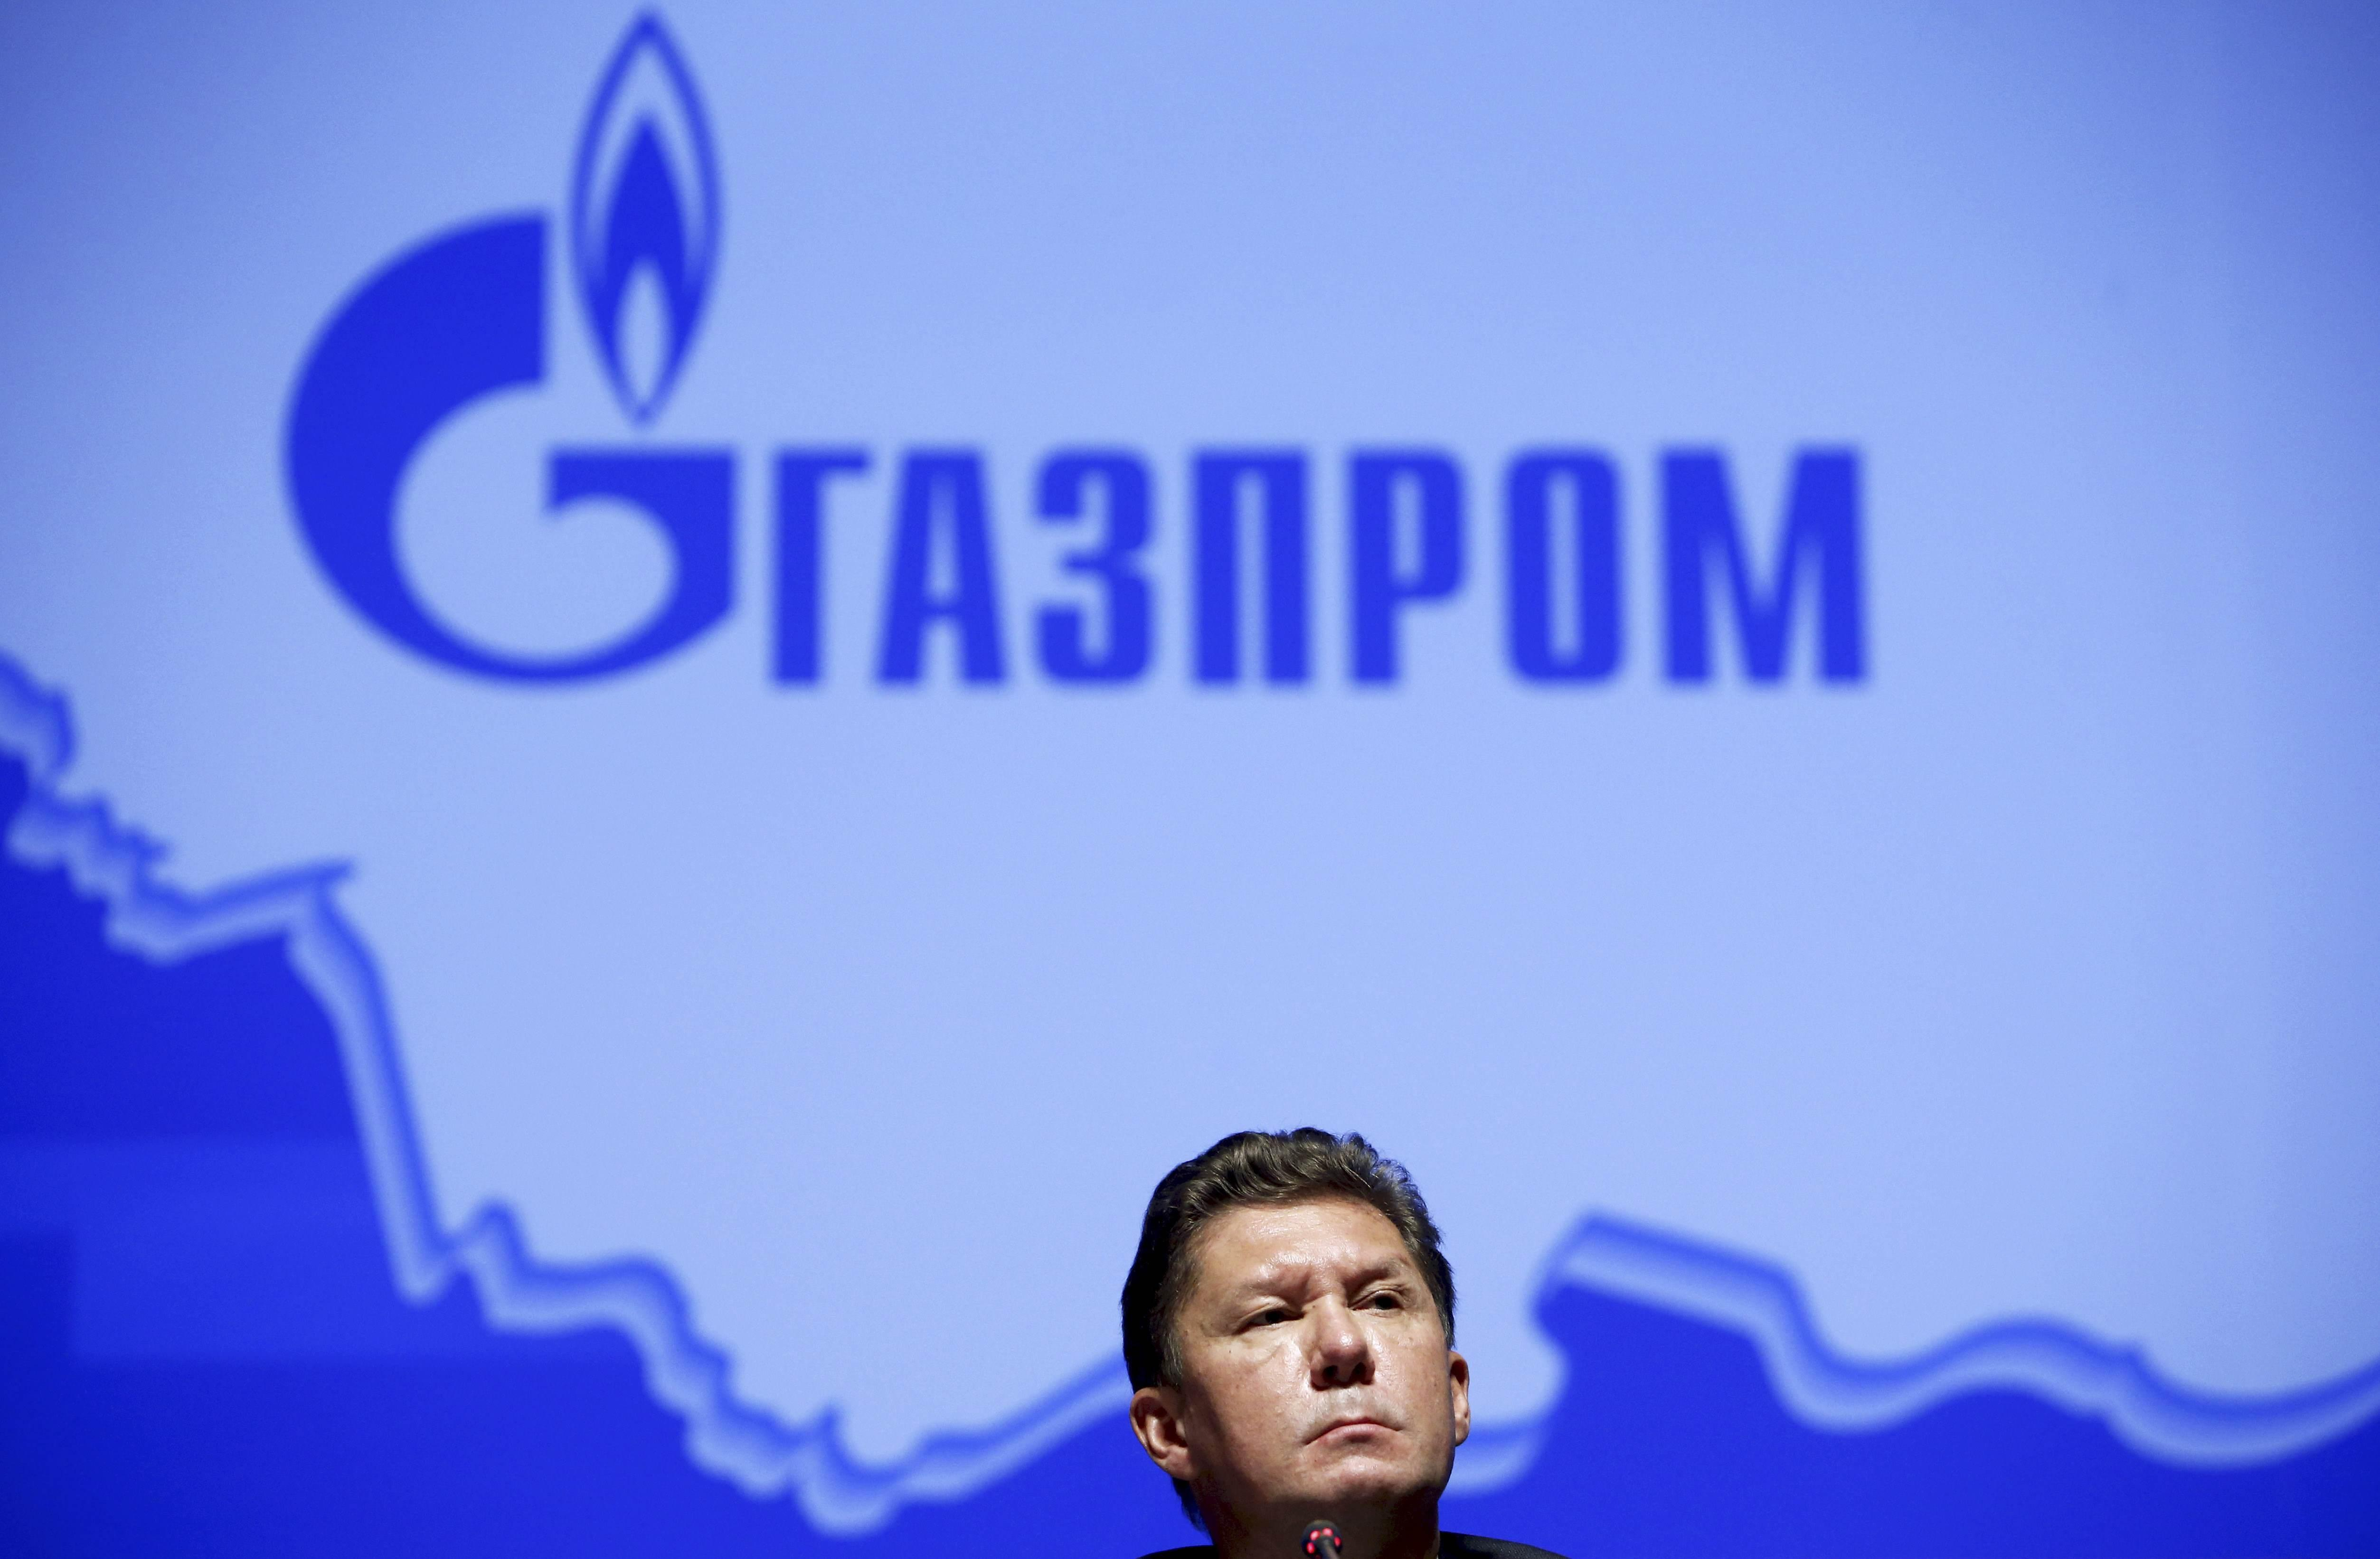 Alexei Miller, chief executive of Russia's top natural gas producer, Gazprom, attends a news conference after an annual general shareholders meeting of the company in Moscow, Russia June 26, 2015. Sergei Karpukhin